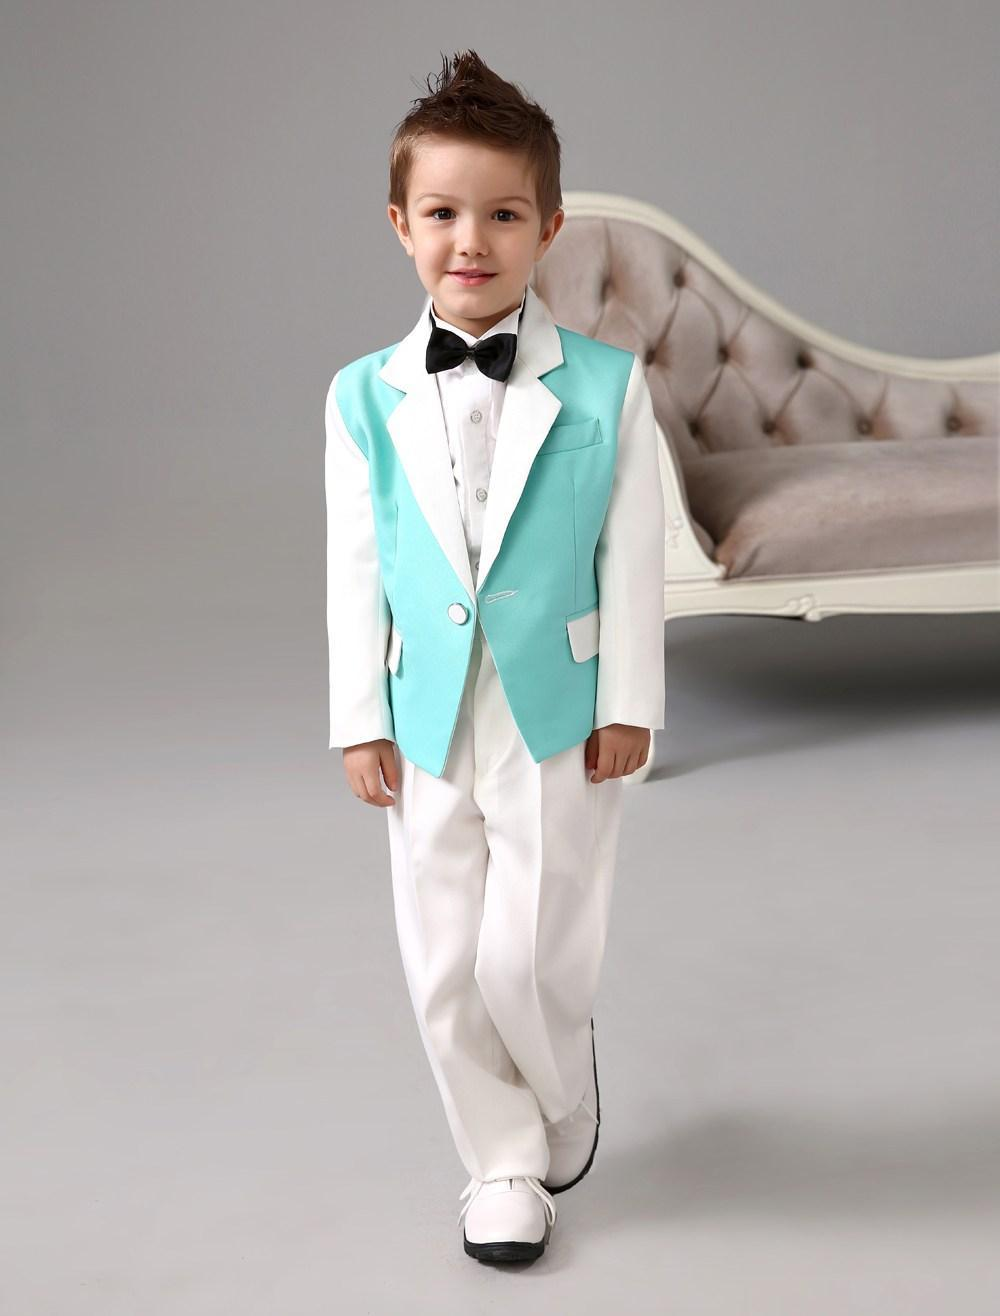 Outstanding Boys Wedding Outfit Photo - Wedding Dress Ideas ...